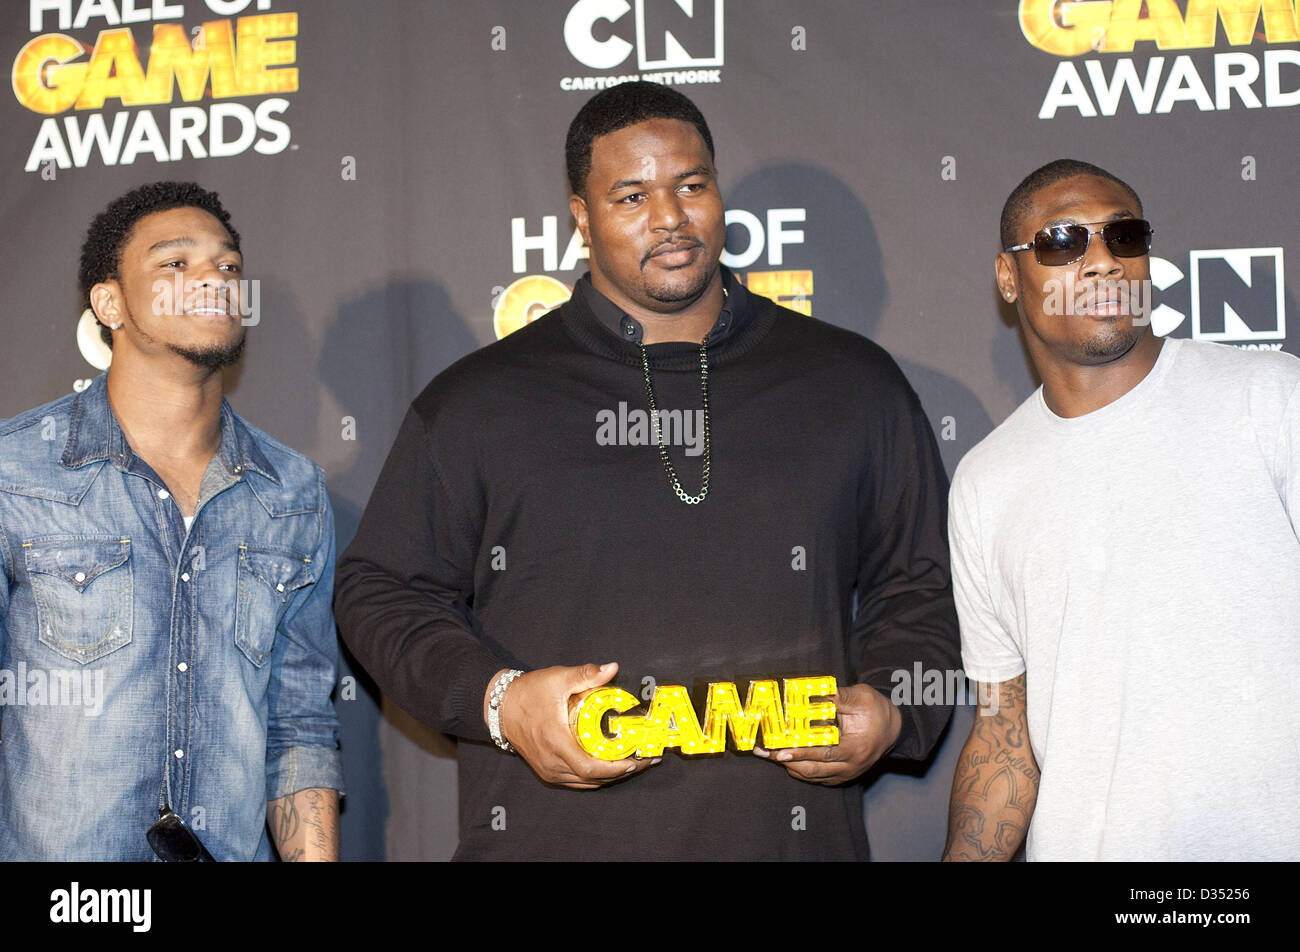 Santa Monica, California, U.S - Professional football players Jimmy Smith, Bryant McKinnie, and Jacoby Jones pose - Stock Image